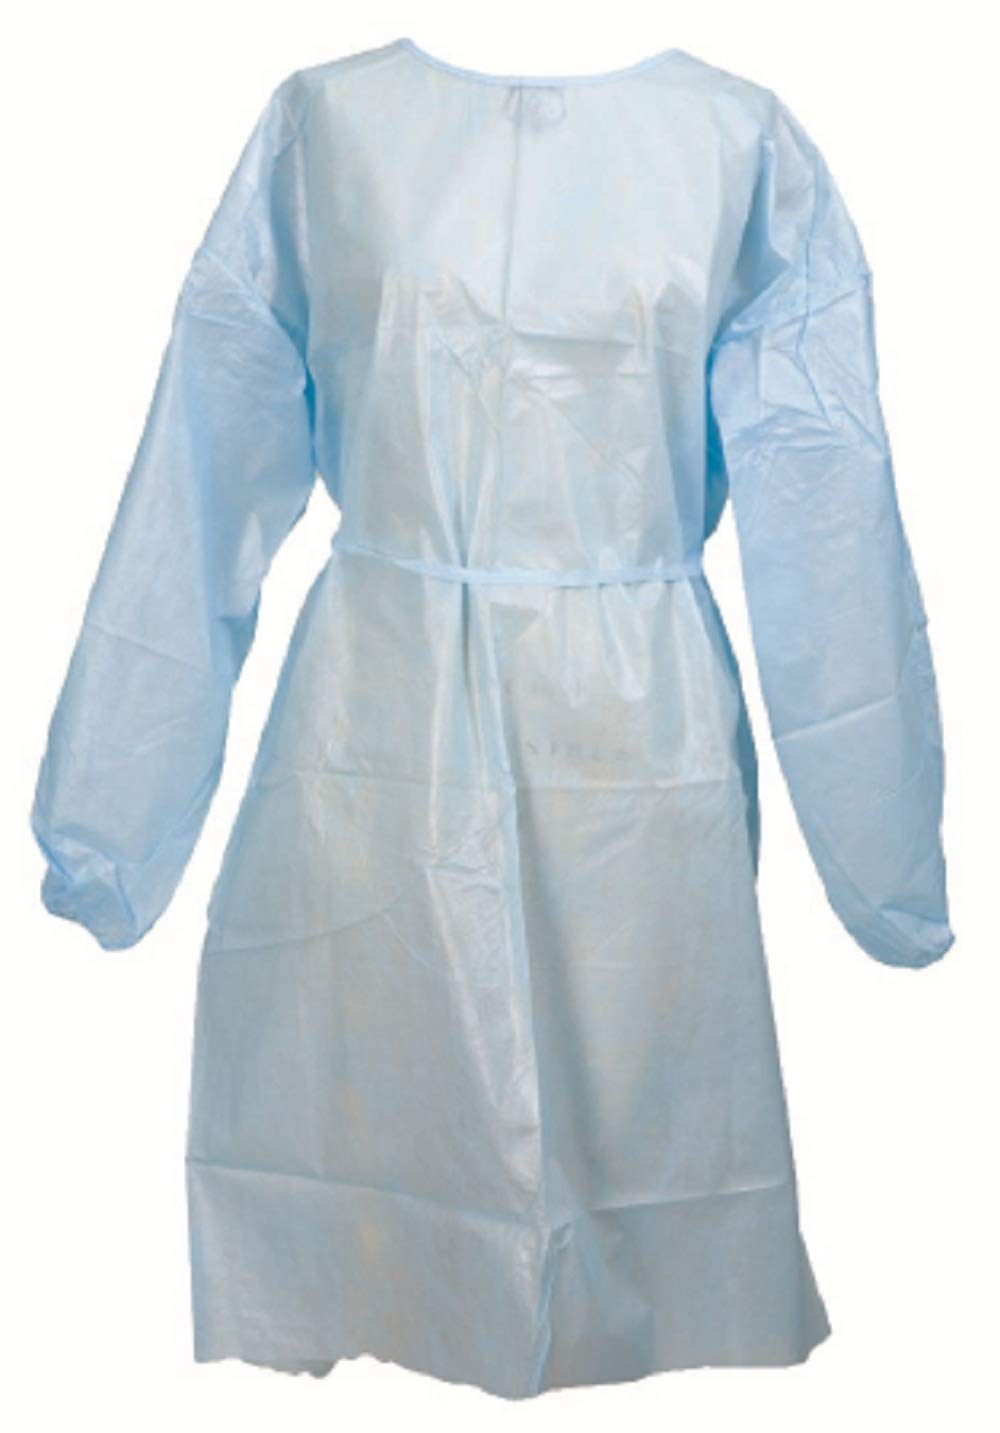 AMZ 50 pack Procedure Gowns. White Polyethylene-Coated Polypropylene Exam Gown for clinic, hospital, healthcare needs. Non-sterile Protective Gowns. Long sleeves, elastic cuff, full back. One size.